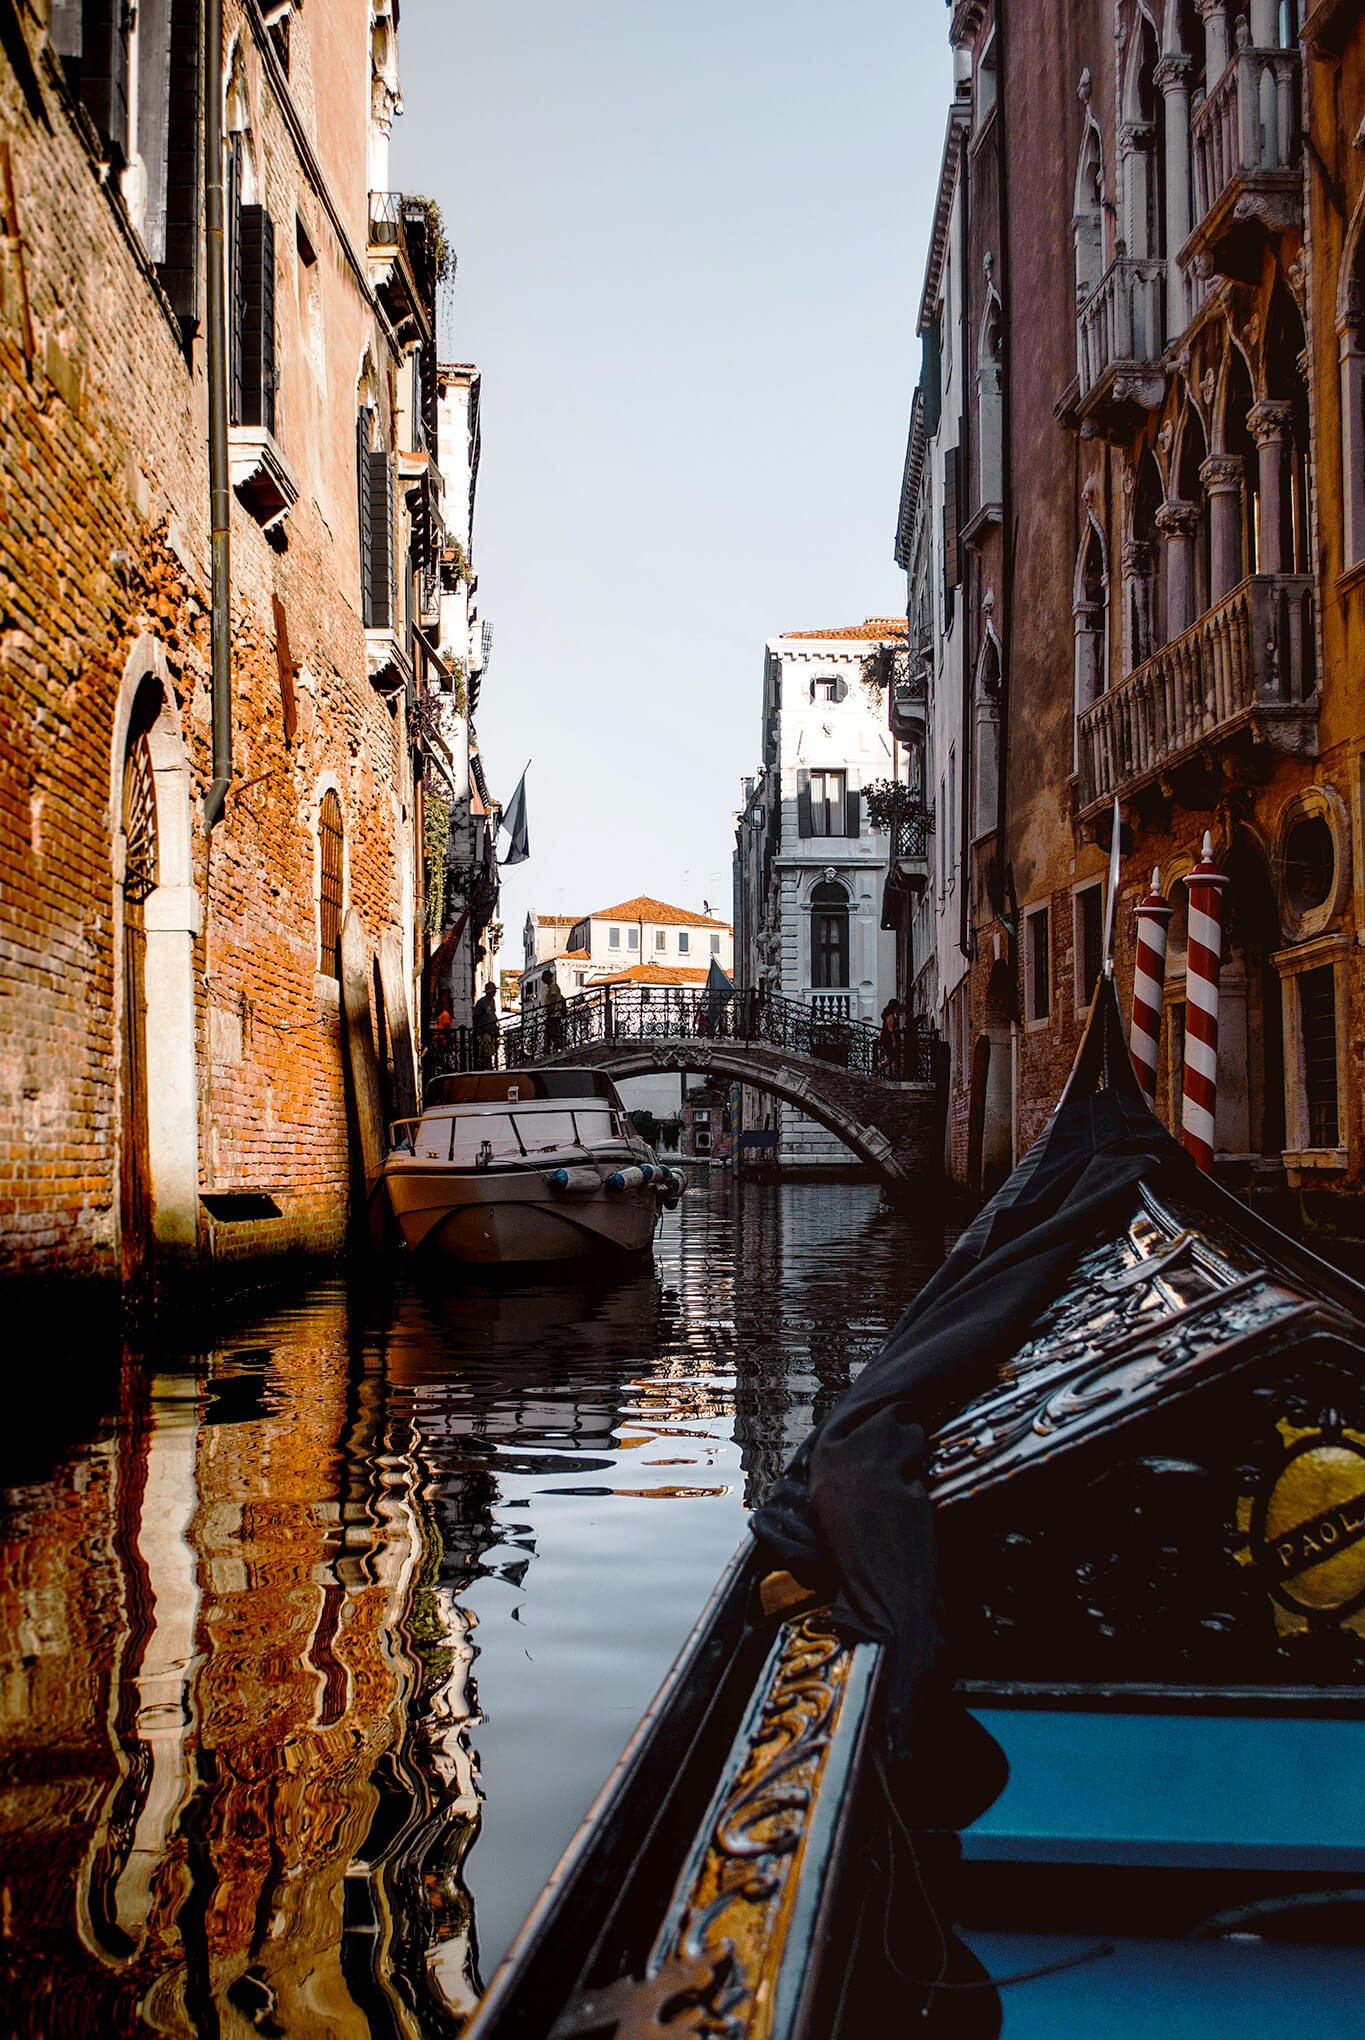 Point of view from riding in gondola through the canals of Venice, Italy